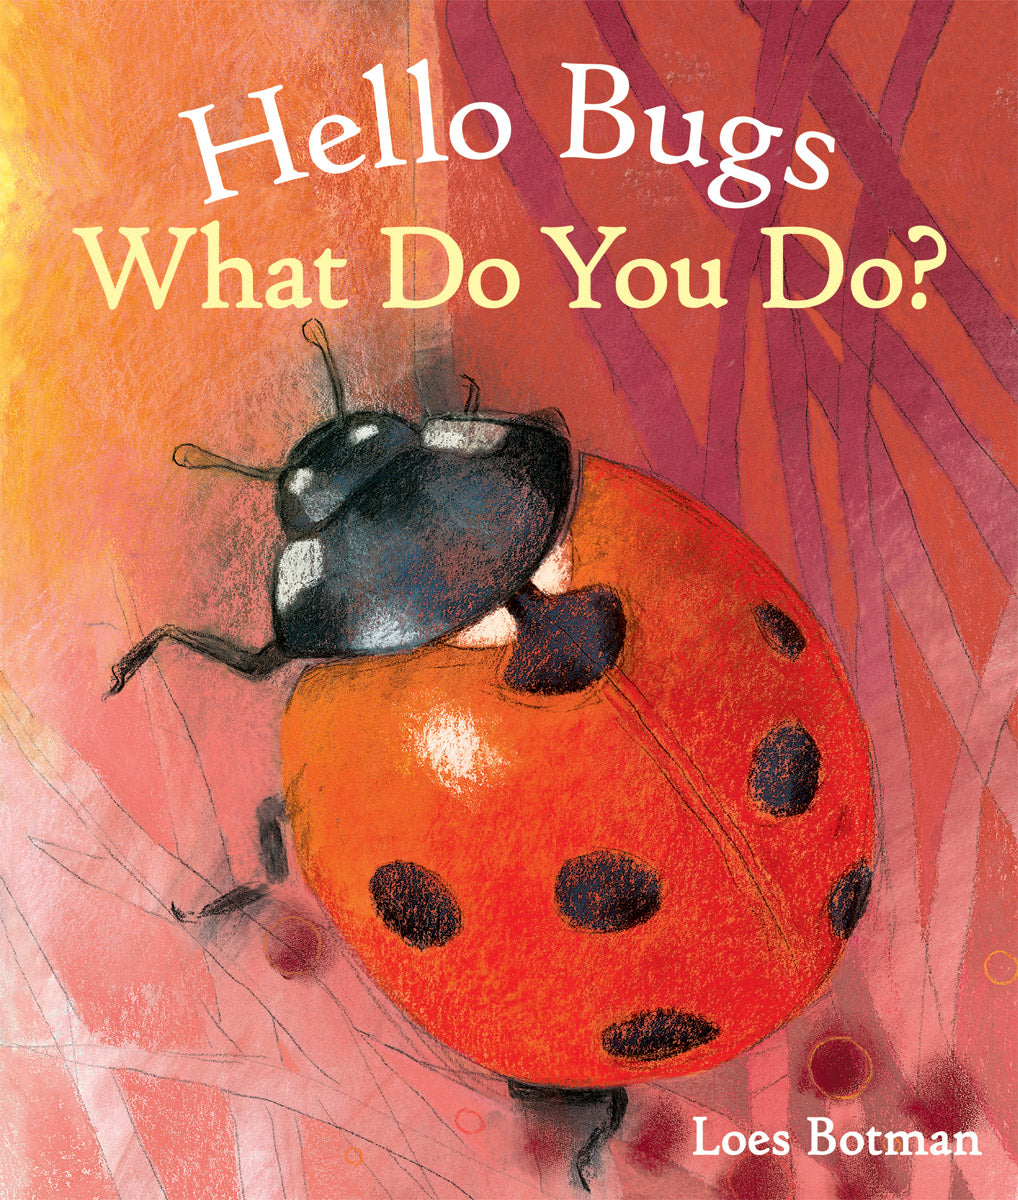 <i>Hello Bugs, What Do You Do?</i> by Loes Botman